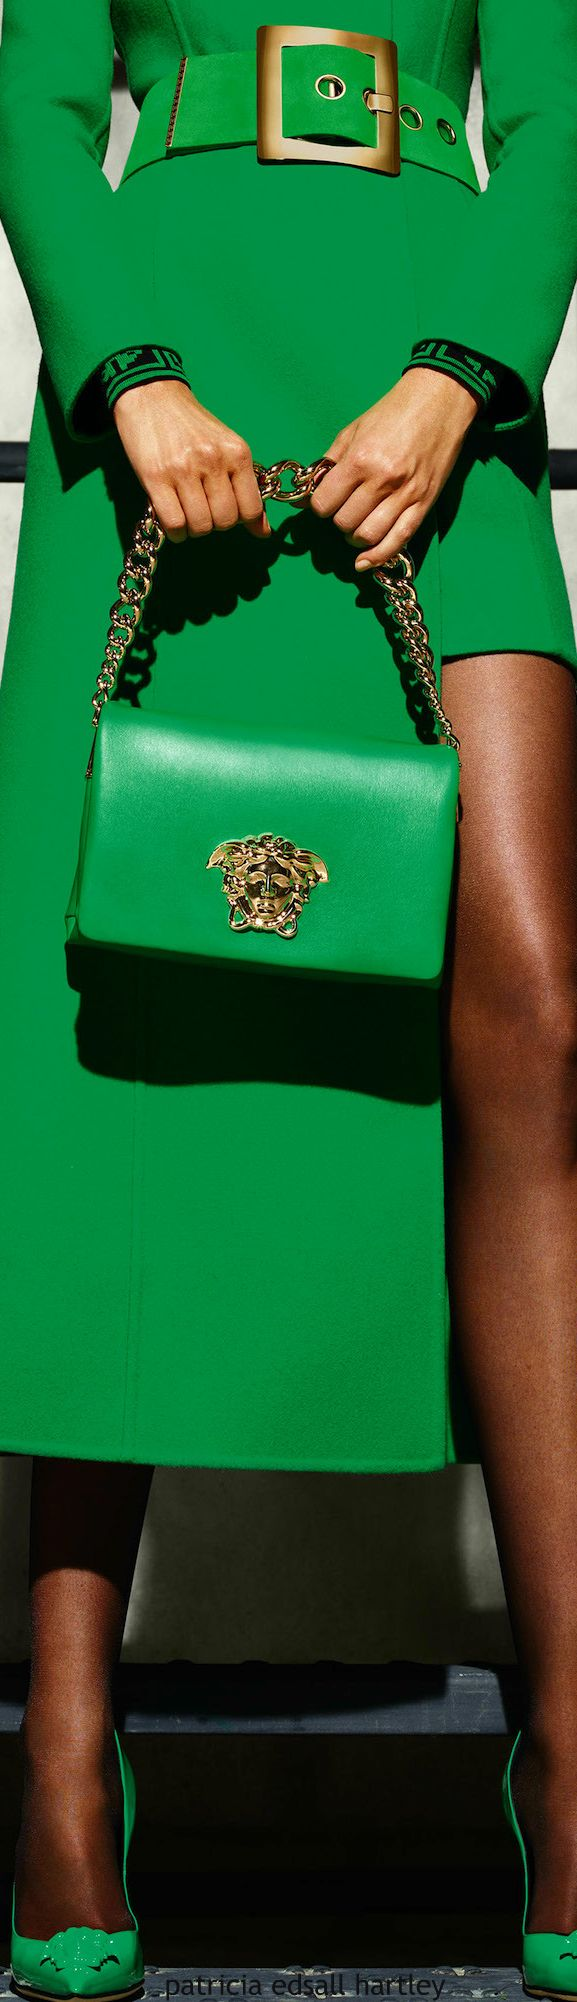 Versace | Palazzo Patent Leather Shoulder Bag | V